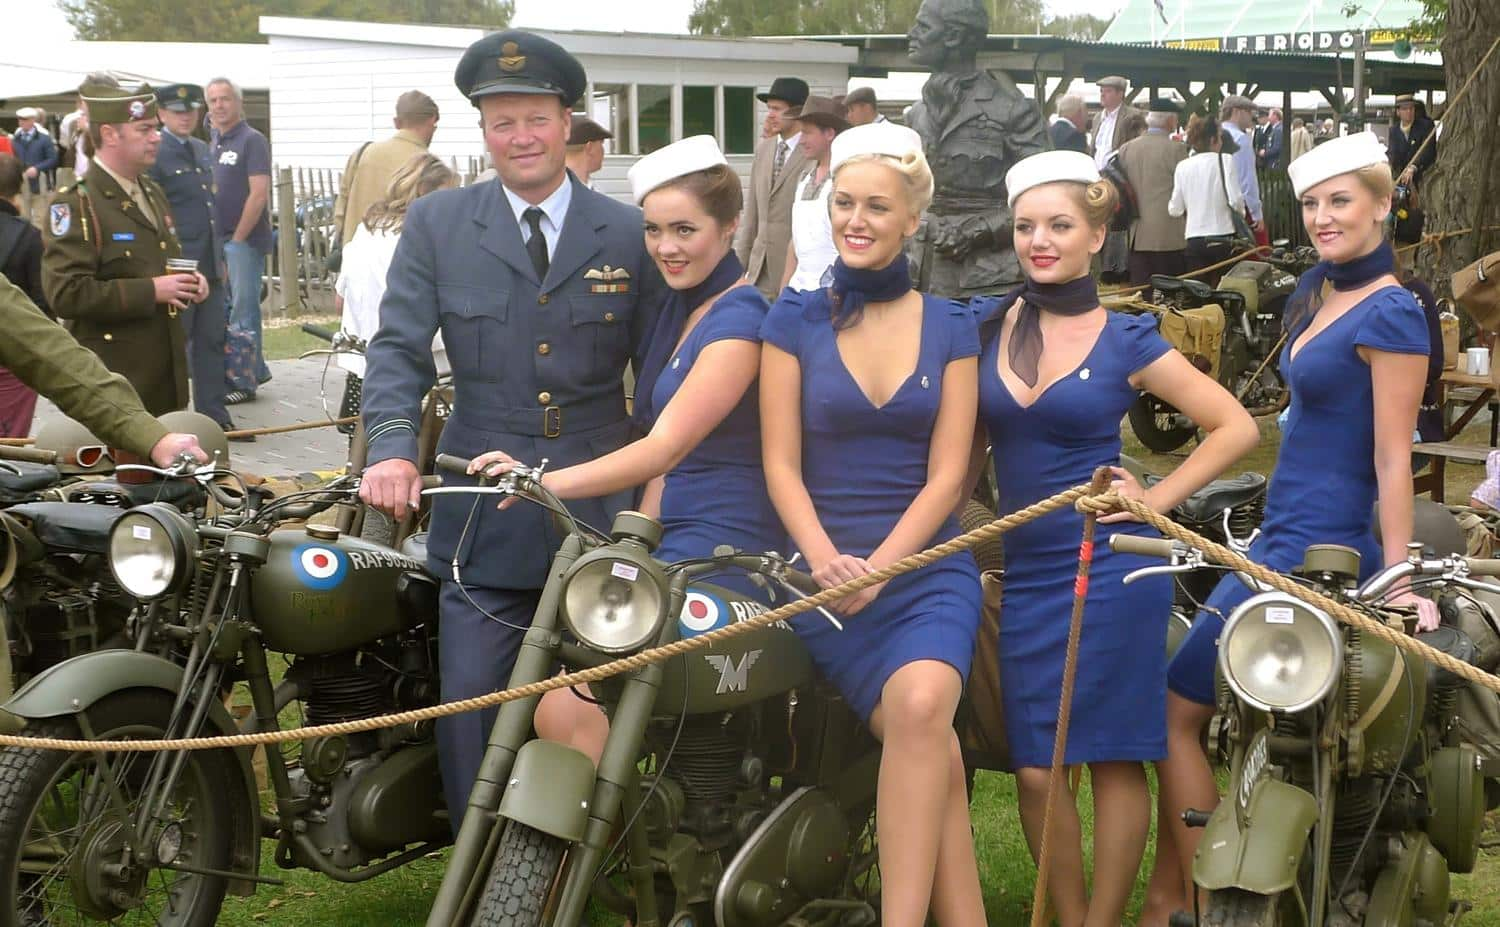 Goodwood Revival fashion - this officer is quite popular with the ladies...